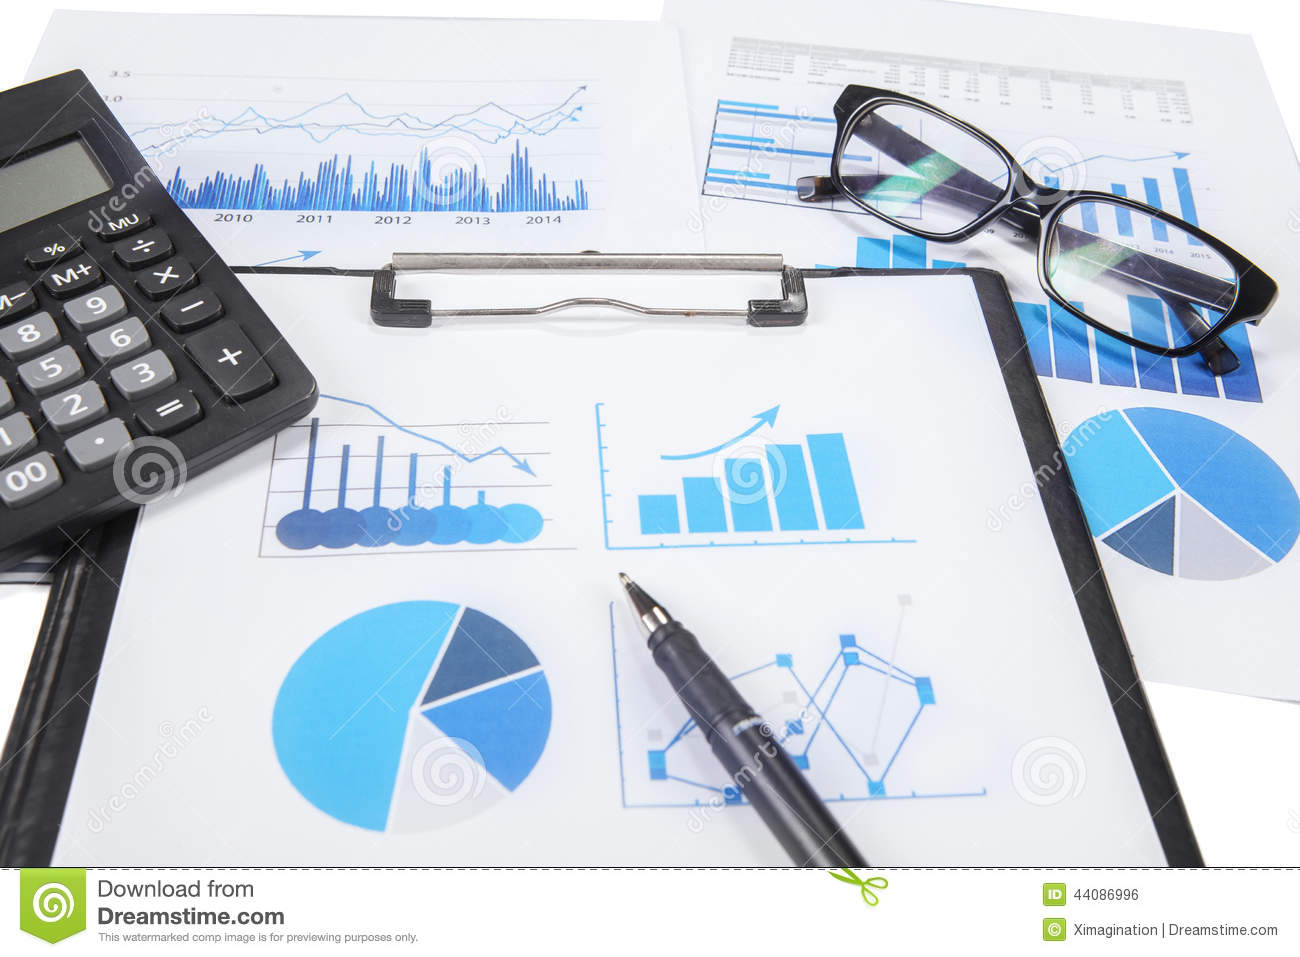 business-finance-research-tax-accounting-statistics-analytic-concept-44086996.jpg